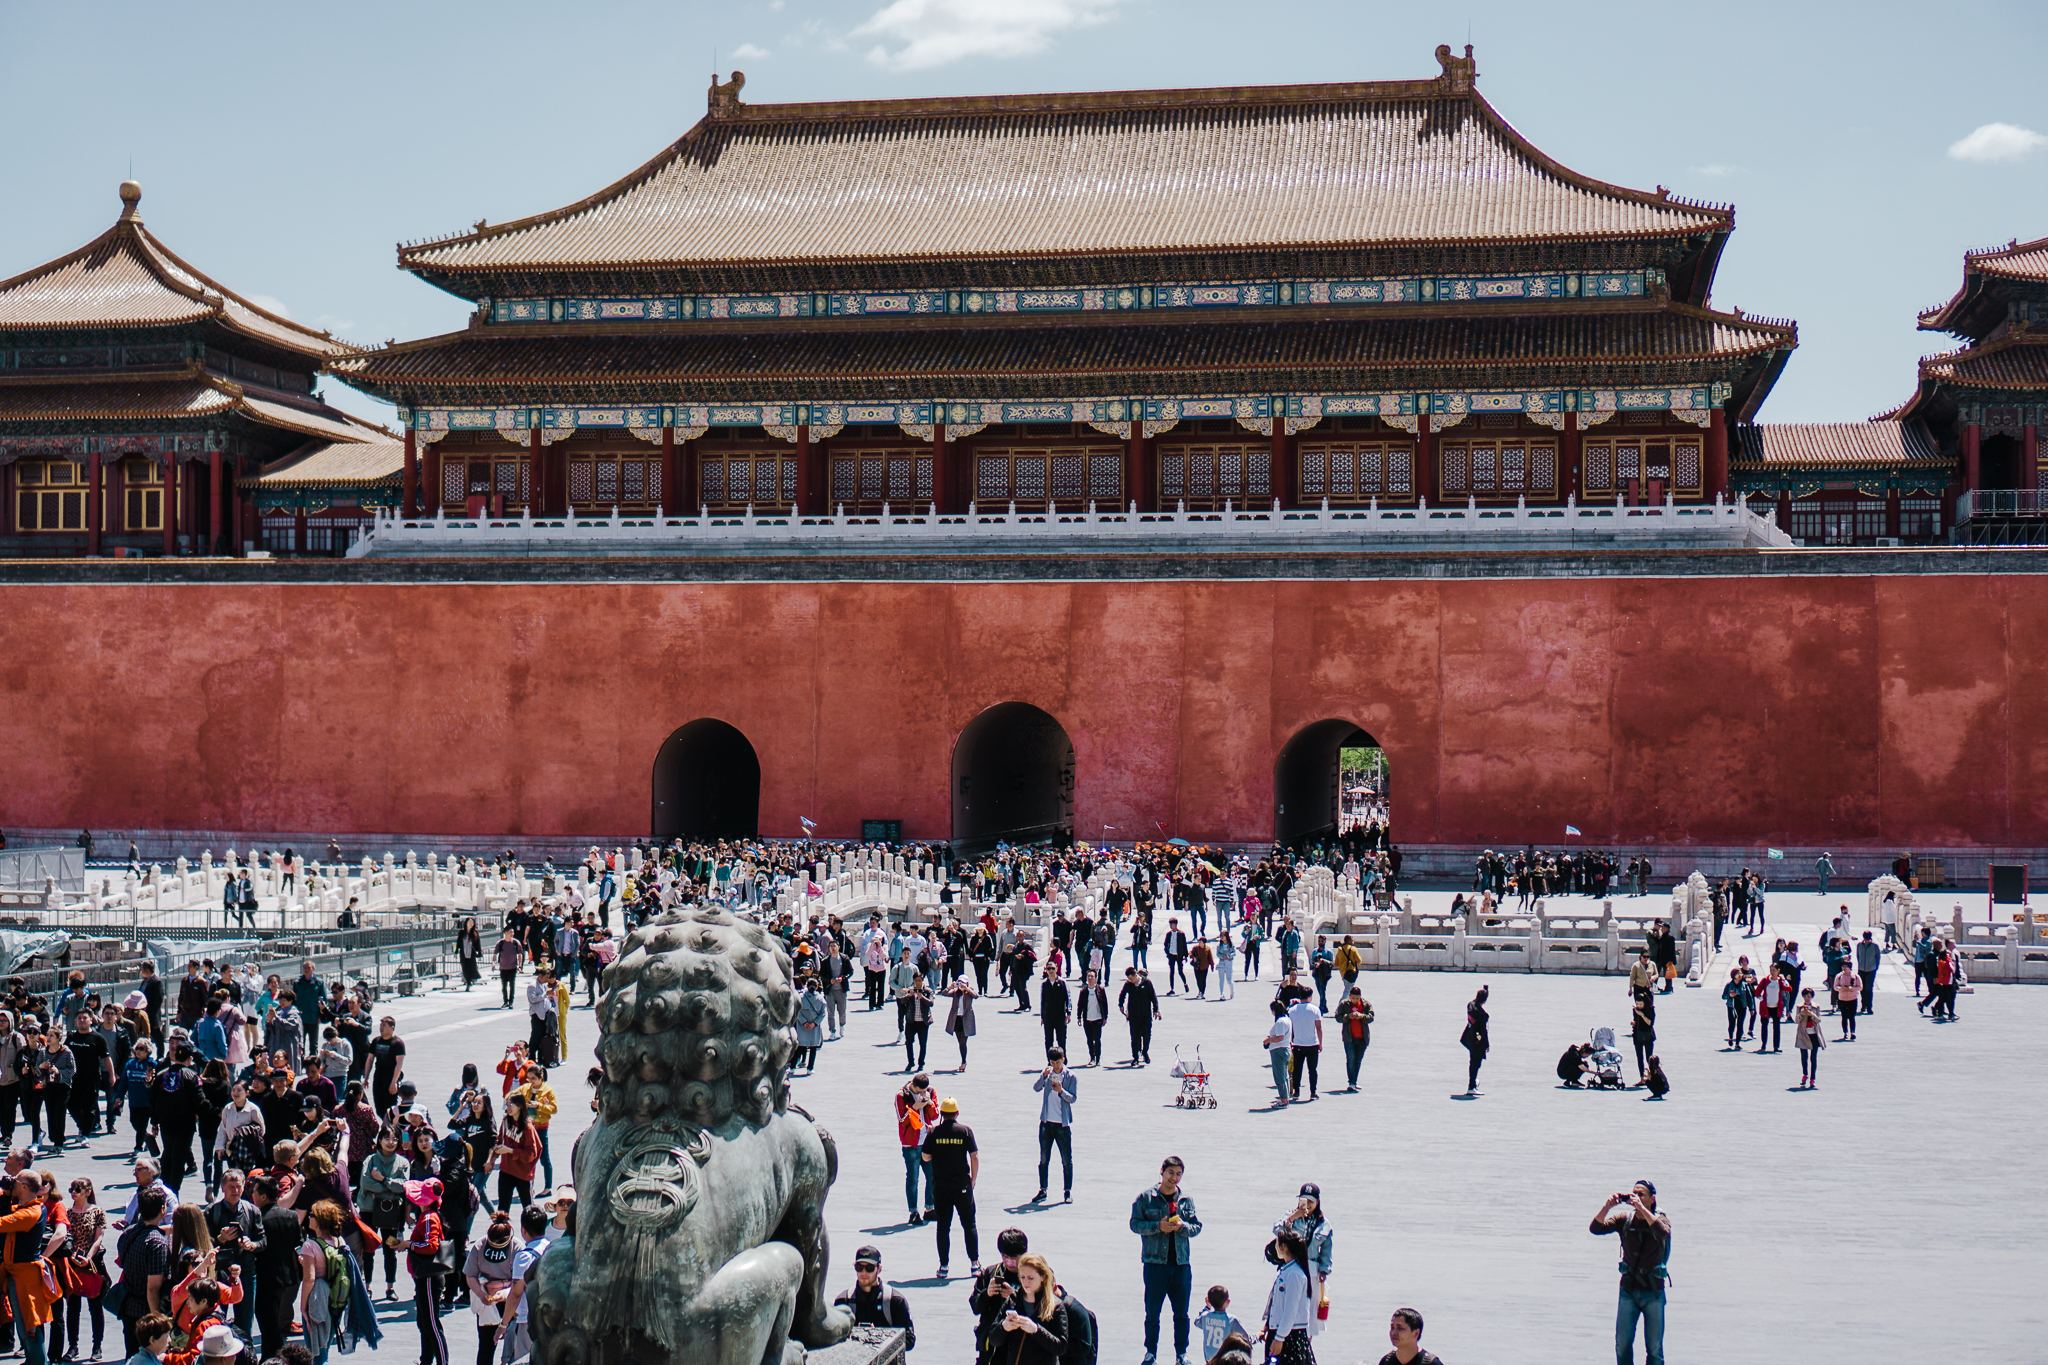 Mutianyu, Great Wall of China,  Beijing, Forbidden City, Emperors Summer Palace (46 of 51).jpg